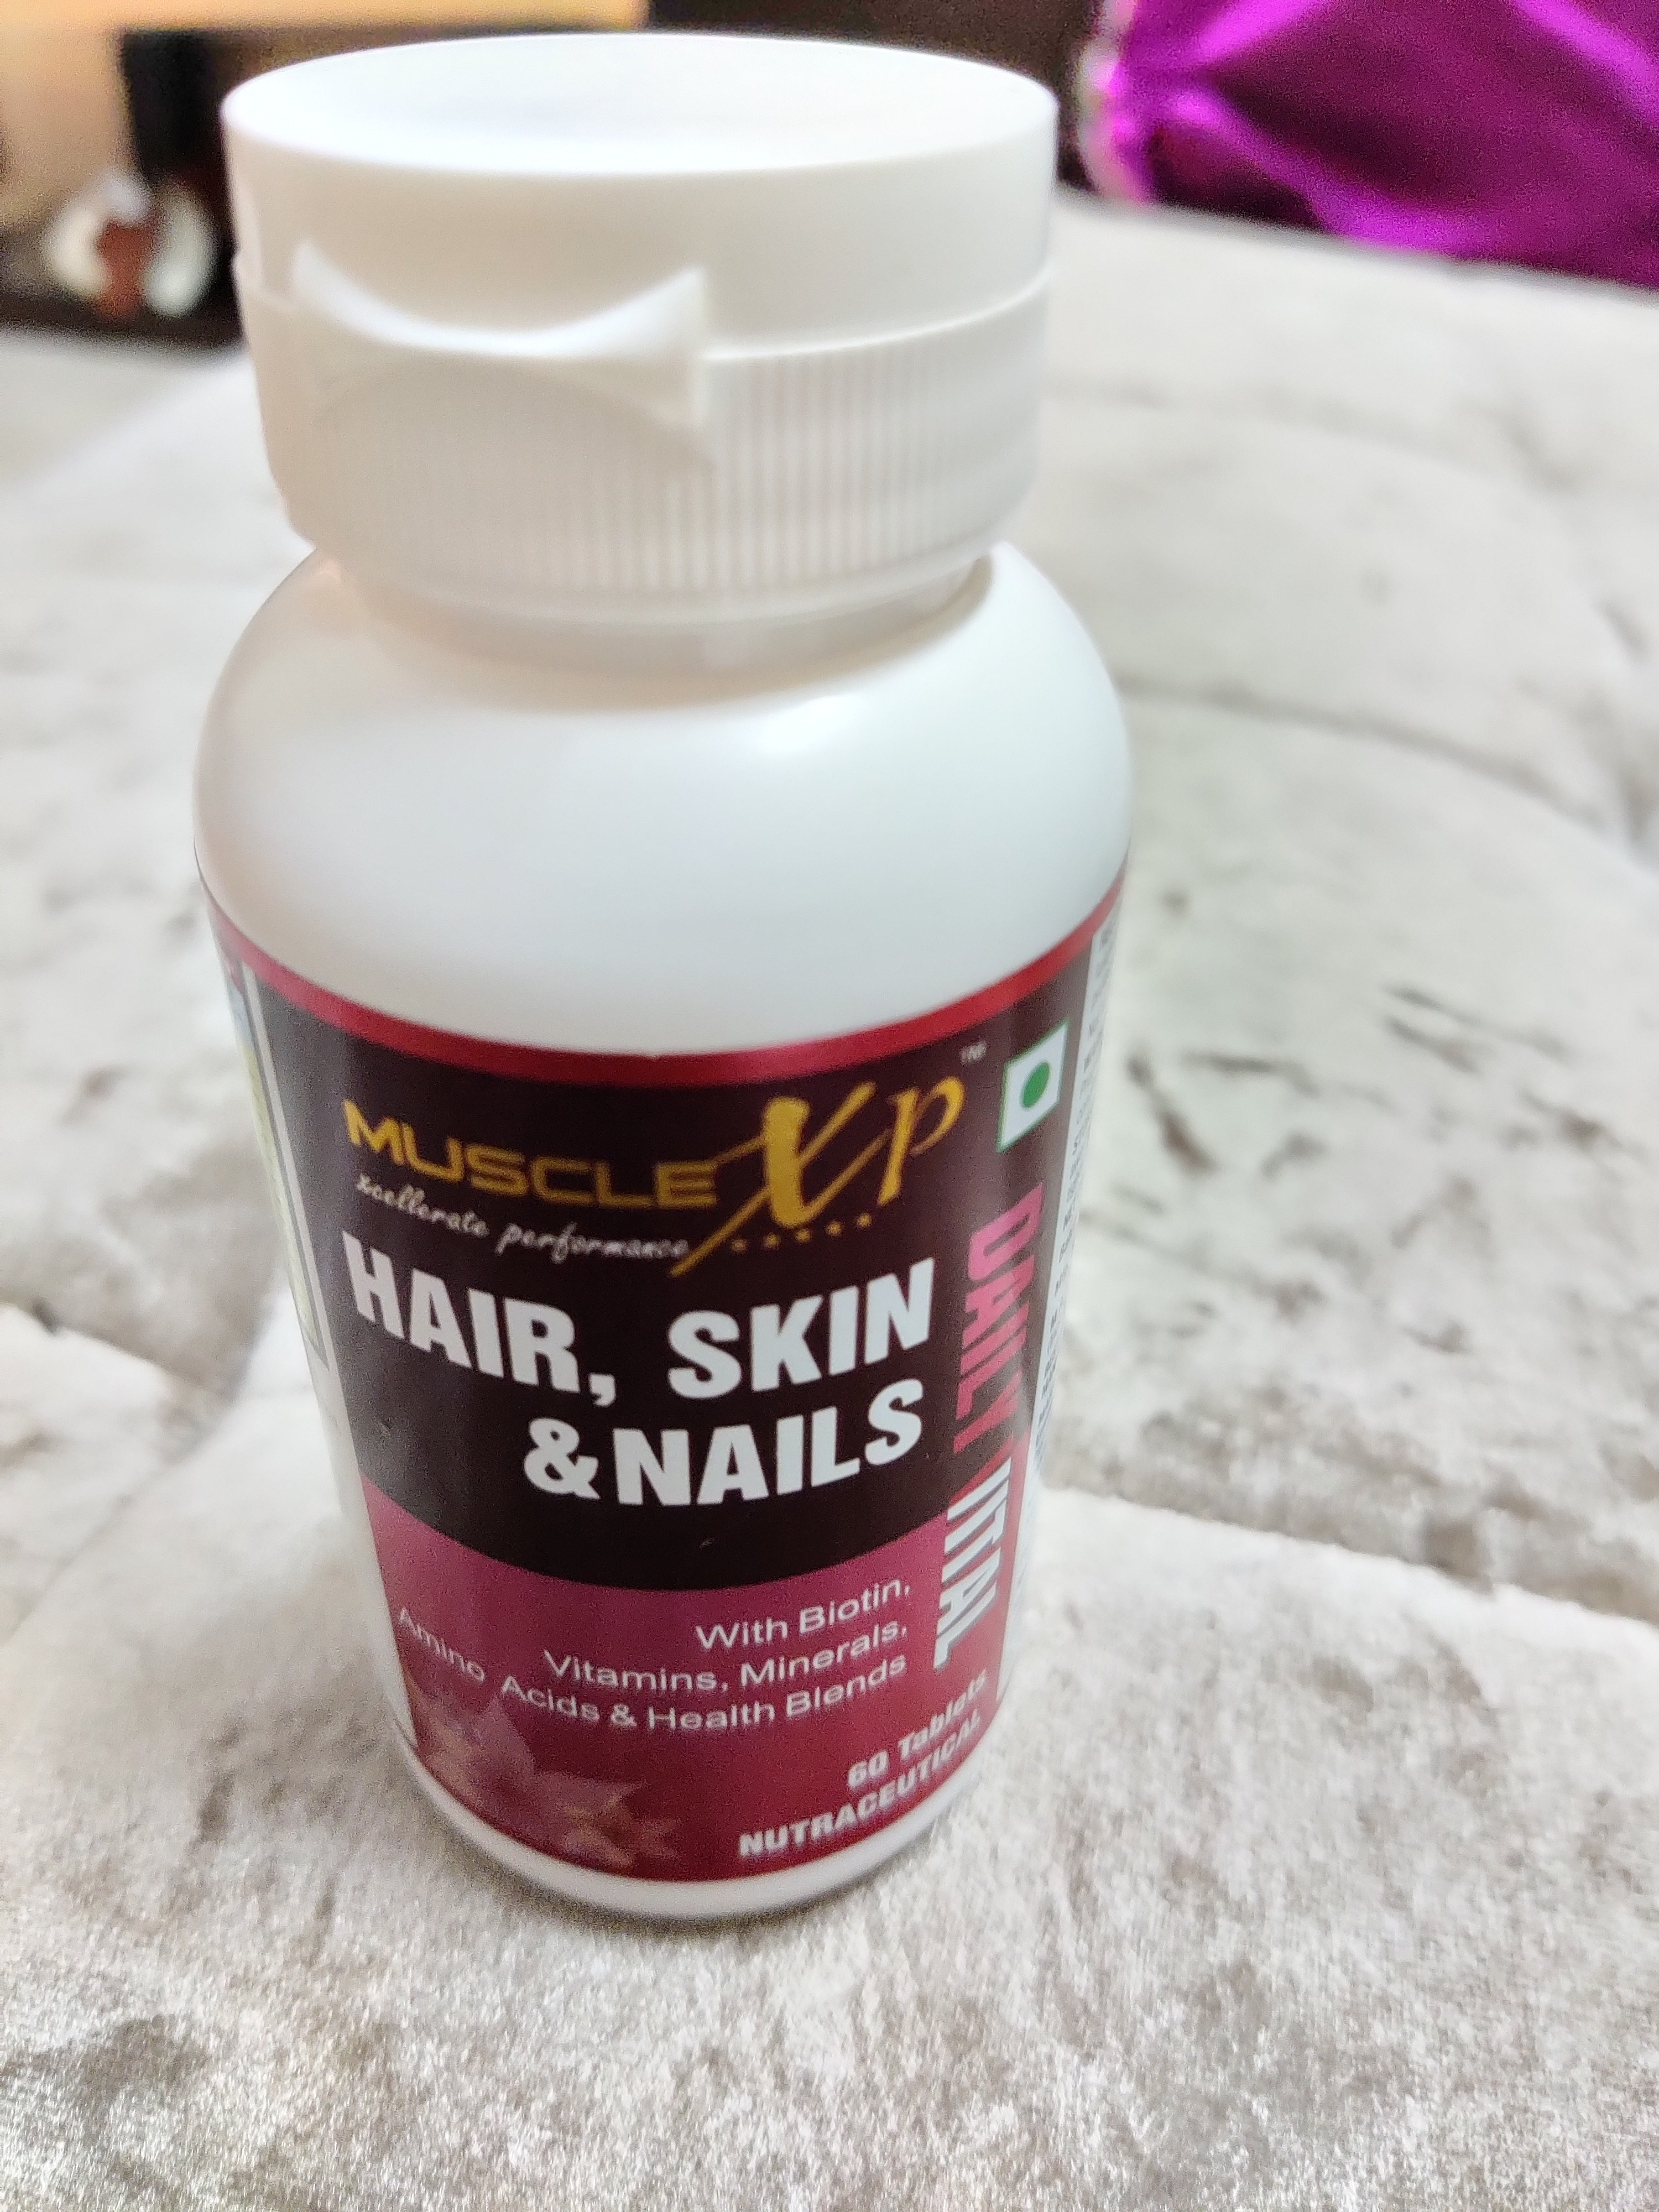 MuscleXP Biotin Hair, Skin & Nails Complete MultiVitamin With Amino Acids -For amazing hair and skin-By vaishali_teotia